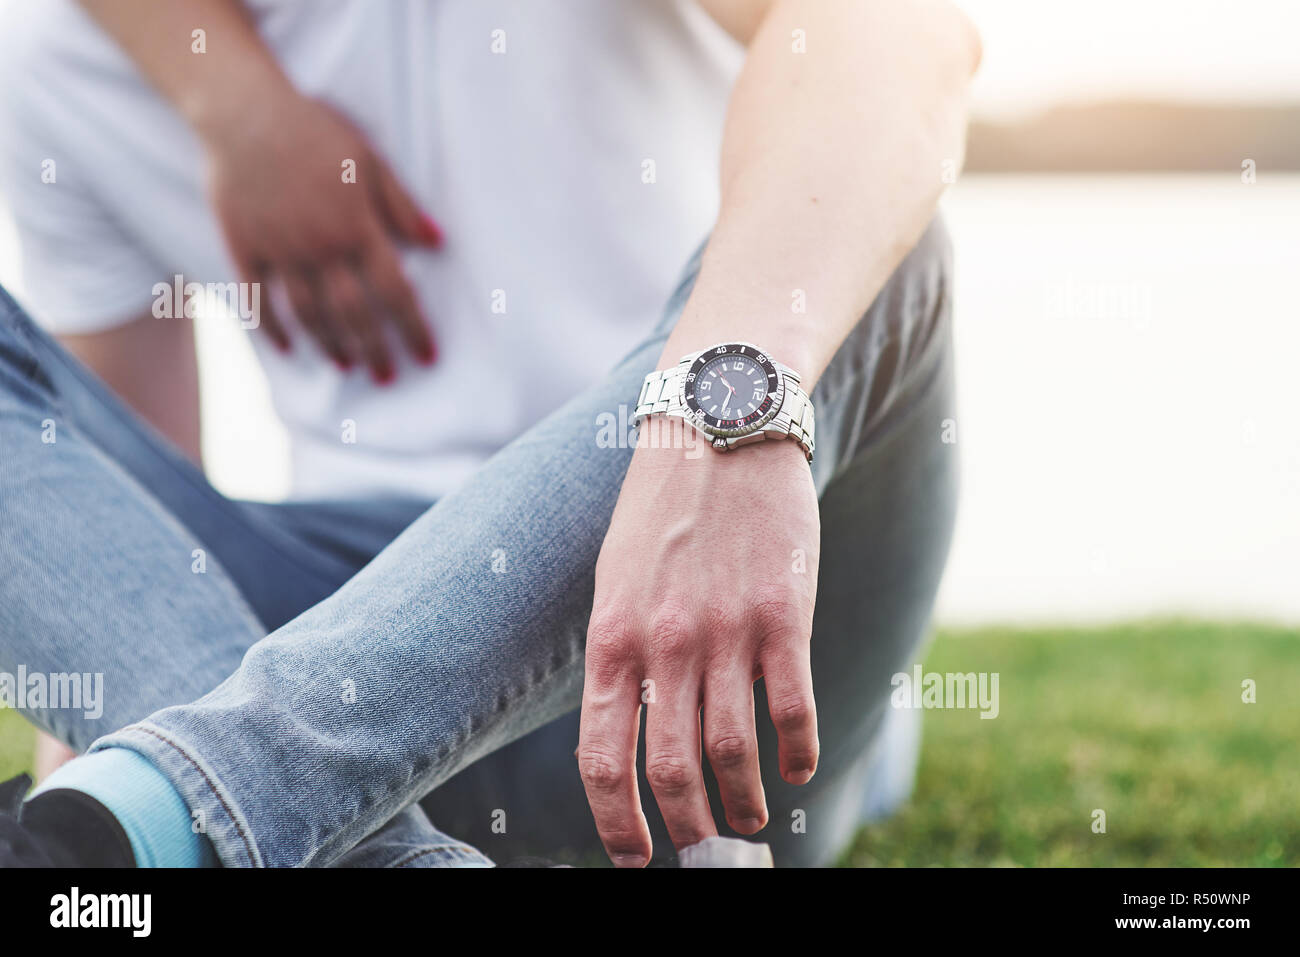 Men's hand with watch, free style - Stock Image